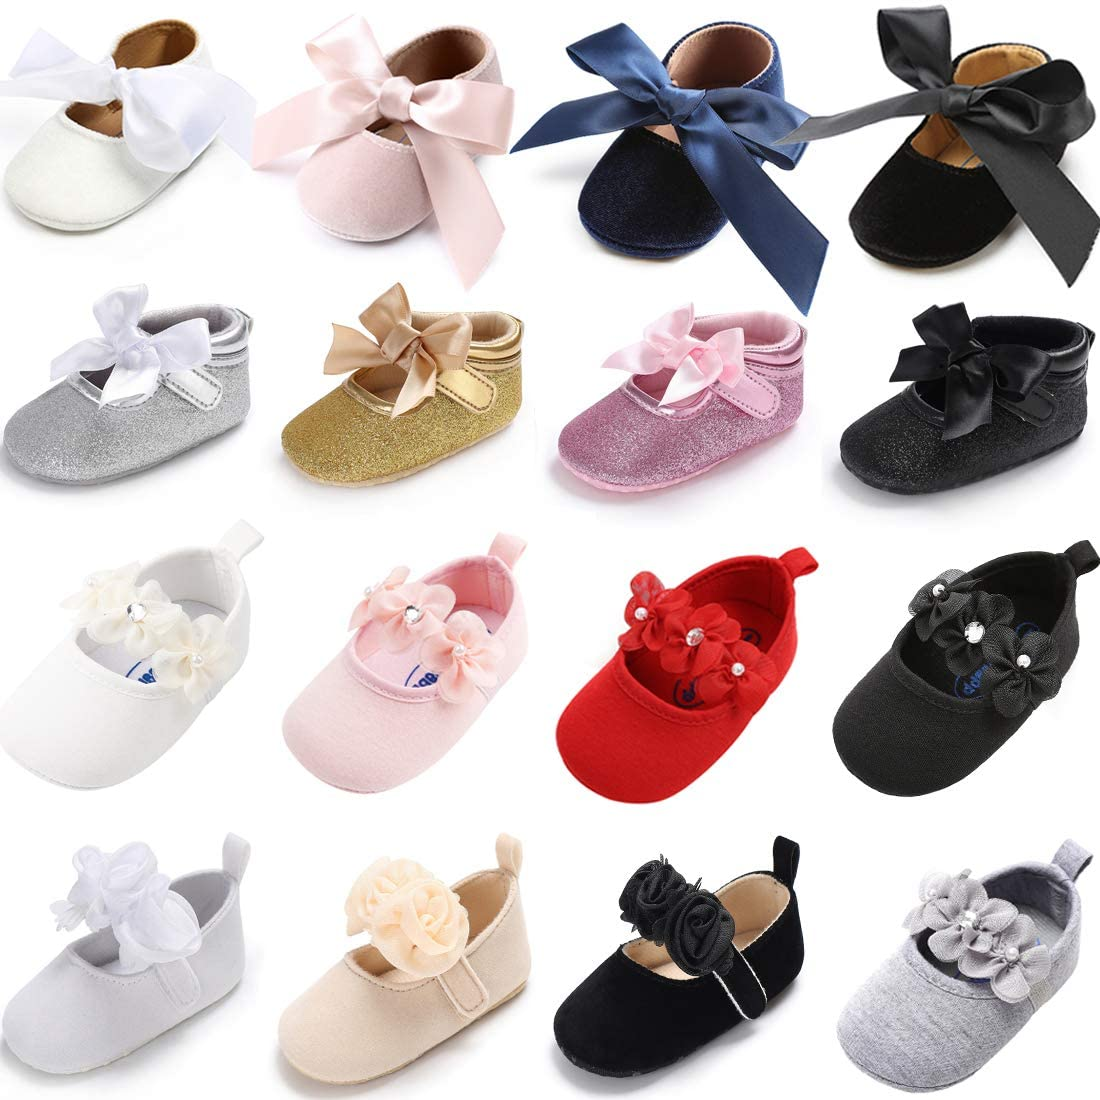 KaKaKiKi Infant Baby Girls Mary Jane Shoes Bowknot Soft Sole Non-Slip Toddler First Walkers Princess Dress Shoes